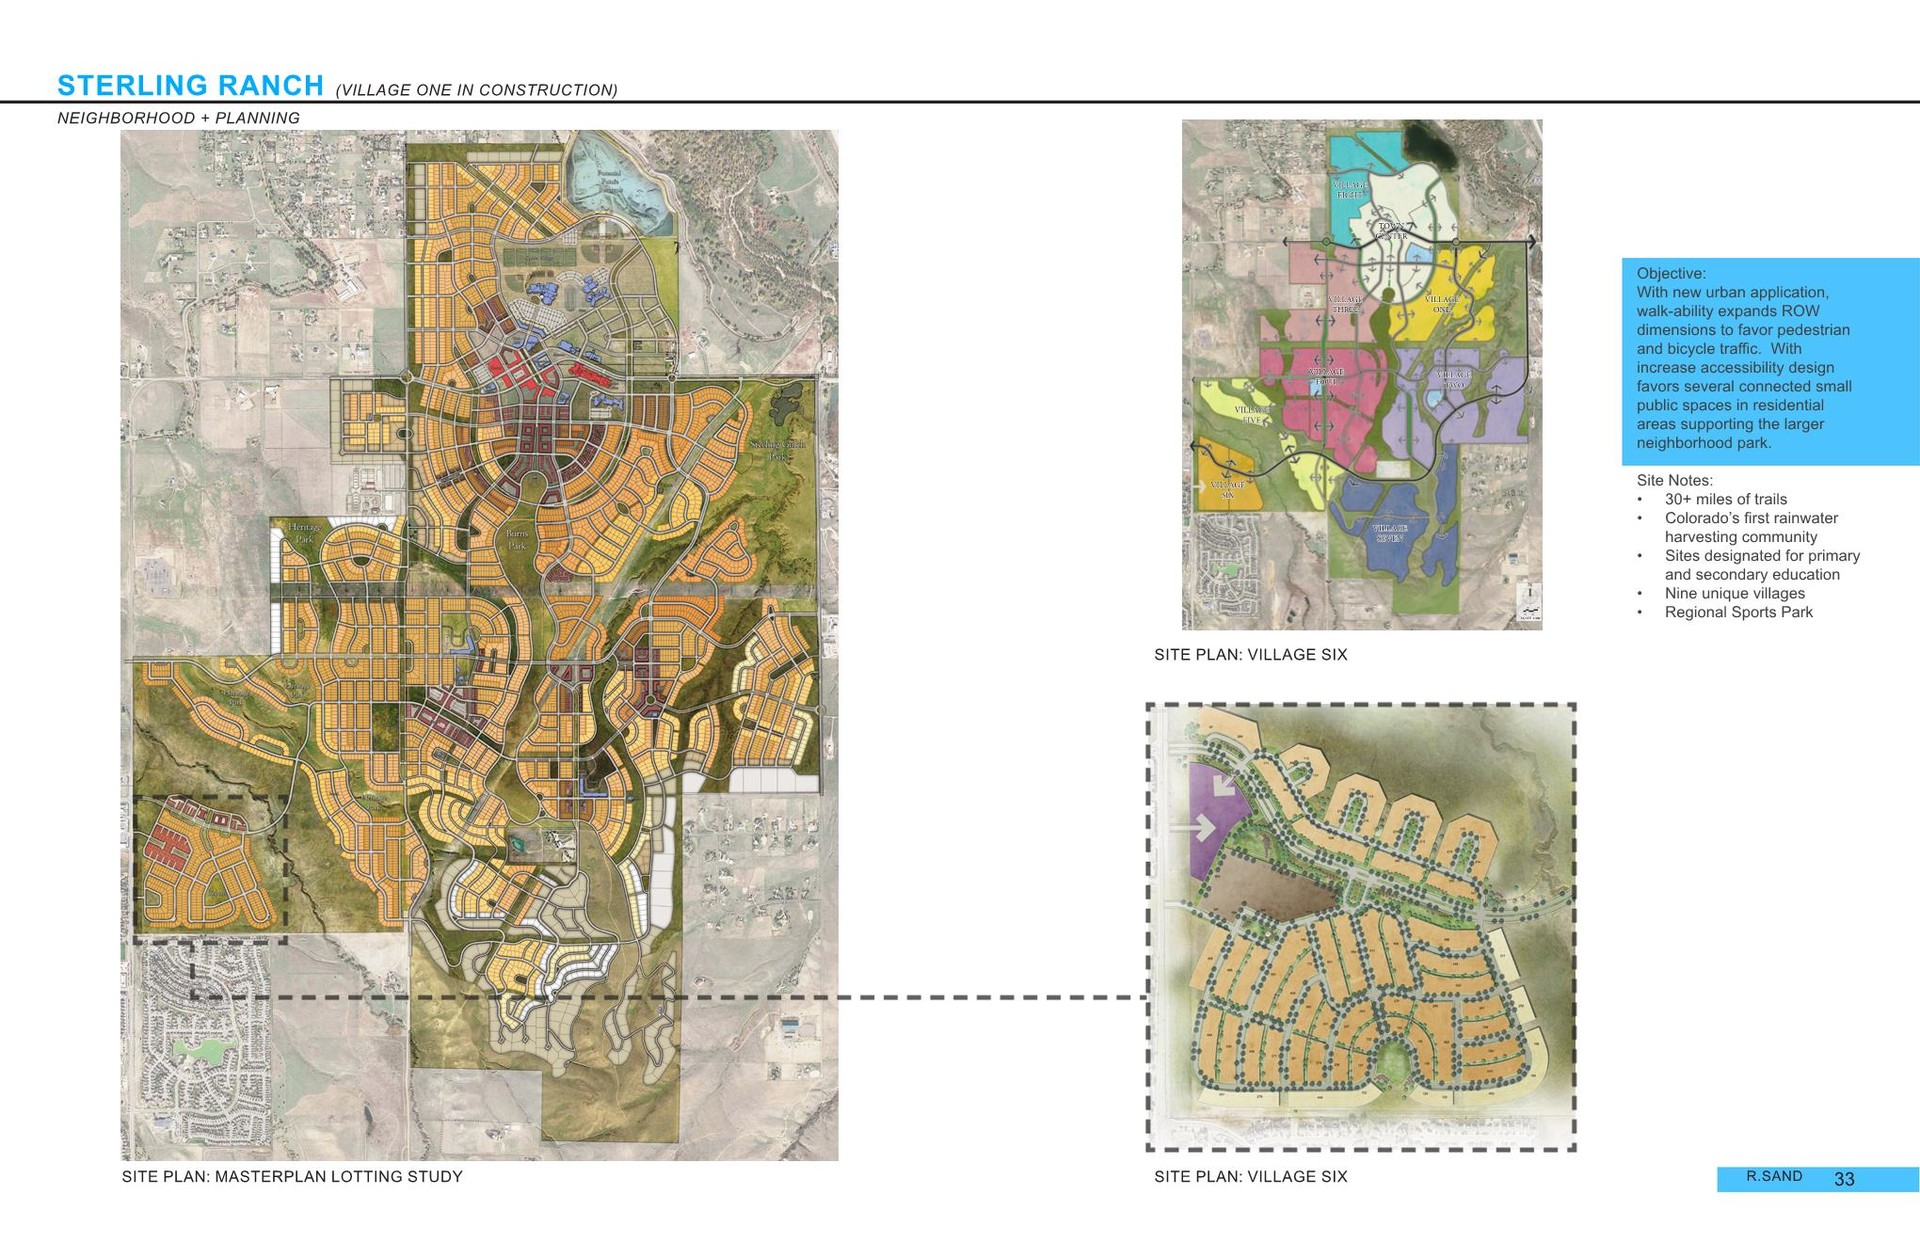 Sterling Ranch Colorado Map.R Sand Community Development Planning